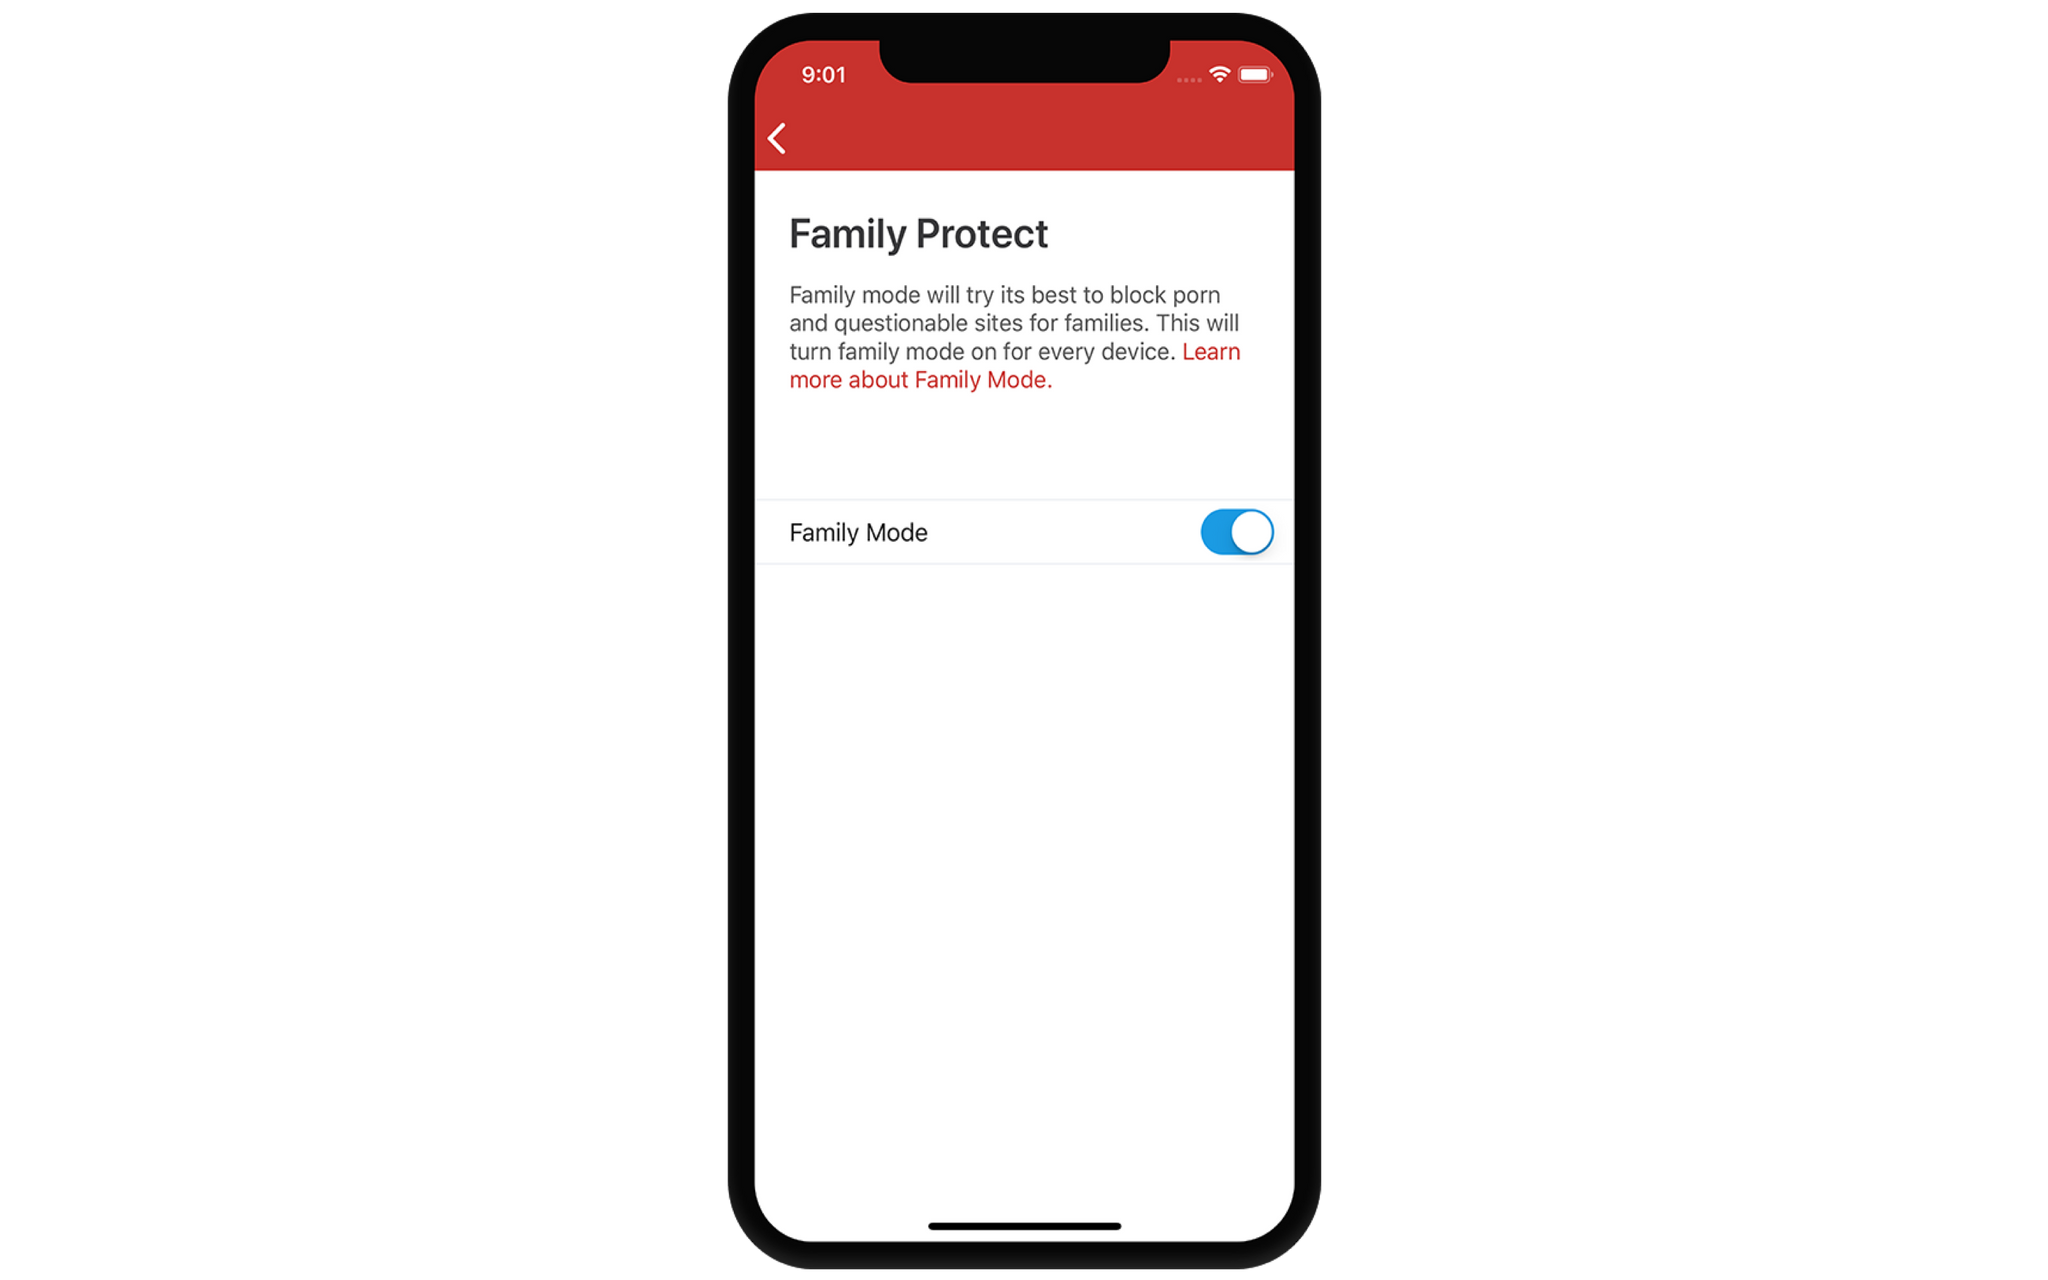 Firewalla: All-in-one Cybersecurity Firewall Protecting Your Family